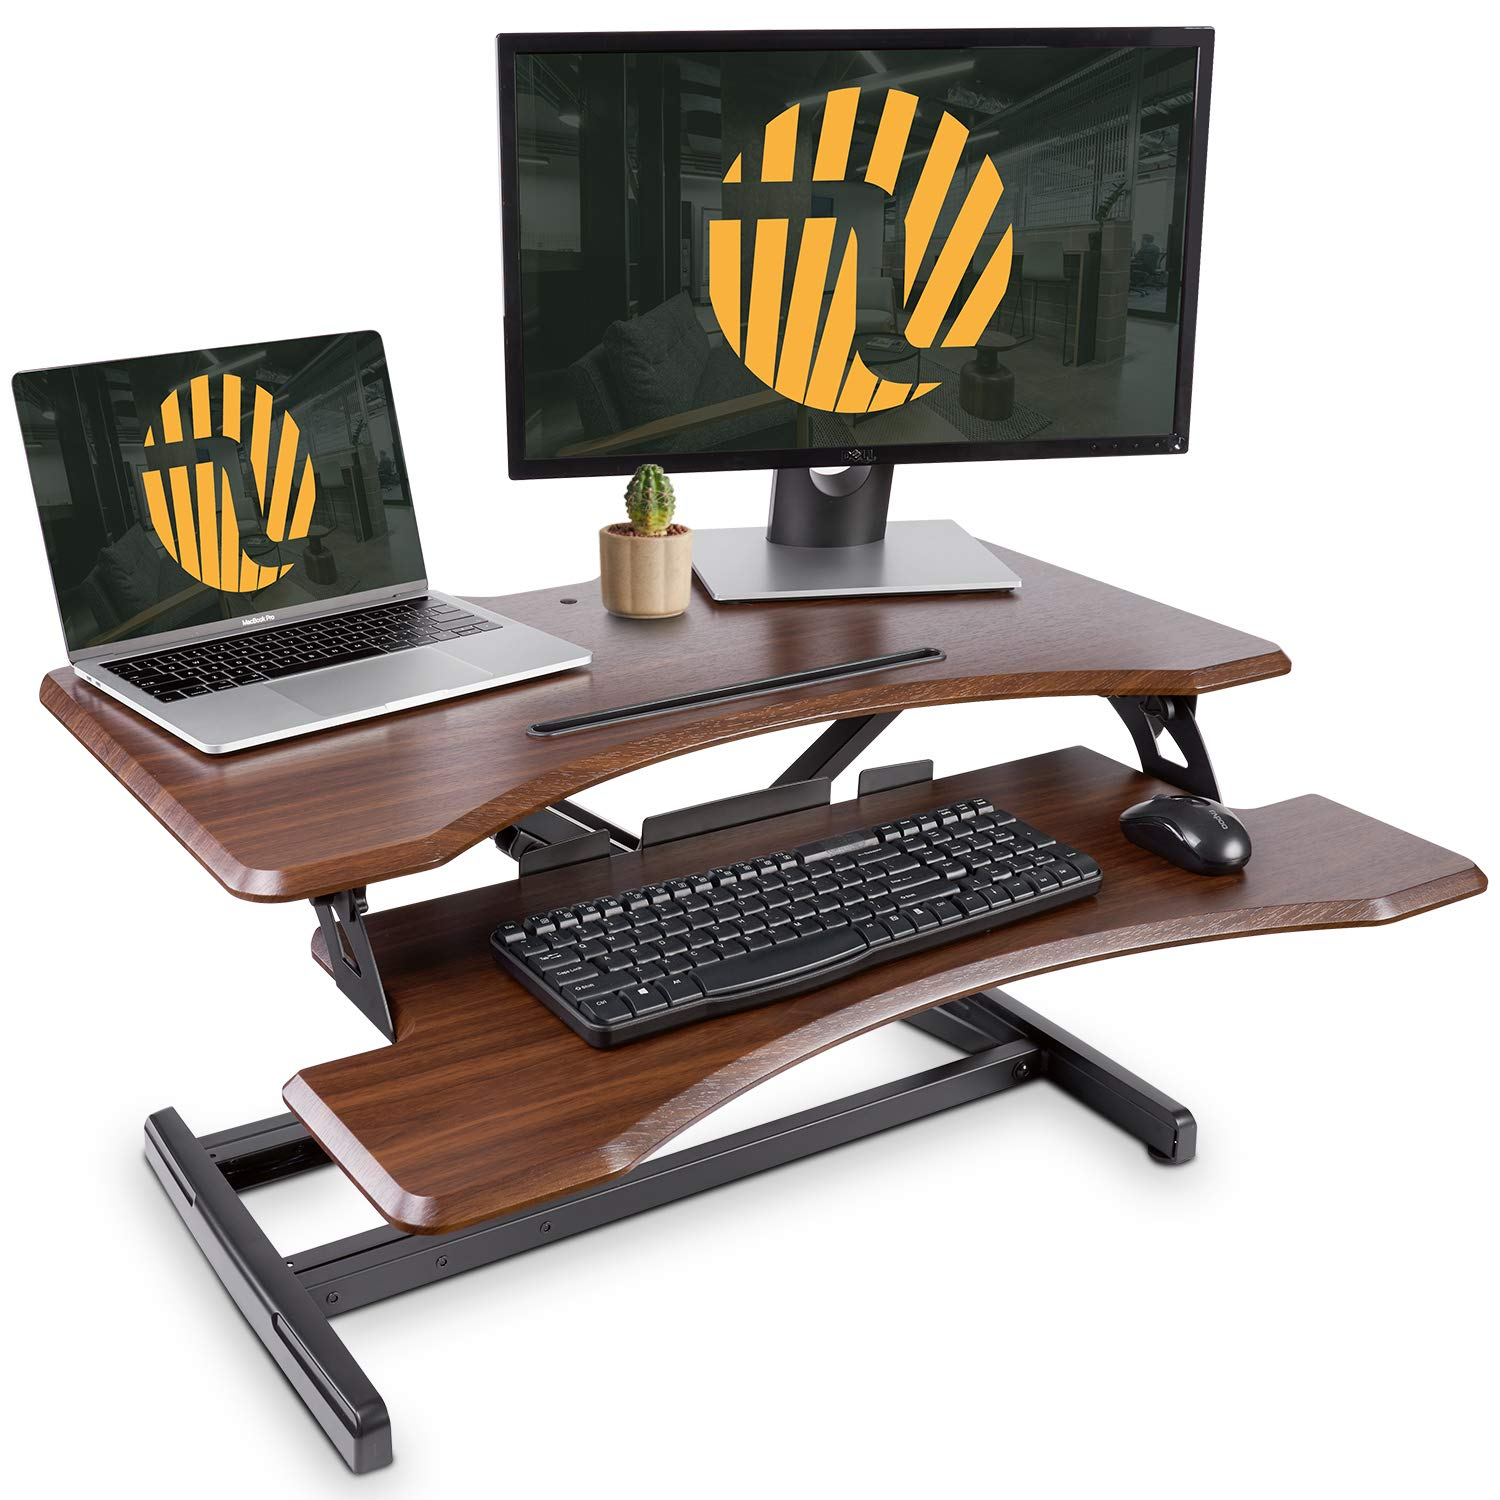 Standing Desk with Height Adjustable - FEZIBO Stand Up Desk Converter, 33 inches Dark Wood Ergonomic Tabletop Workstation Riser fits Dual Monitors by FEZIBO